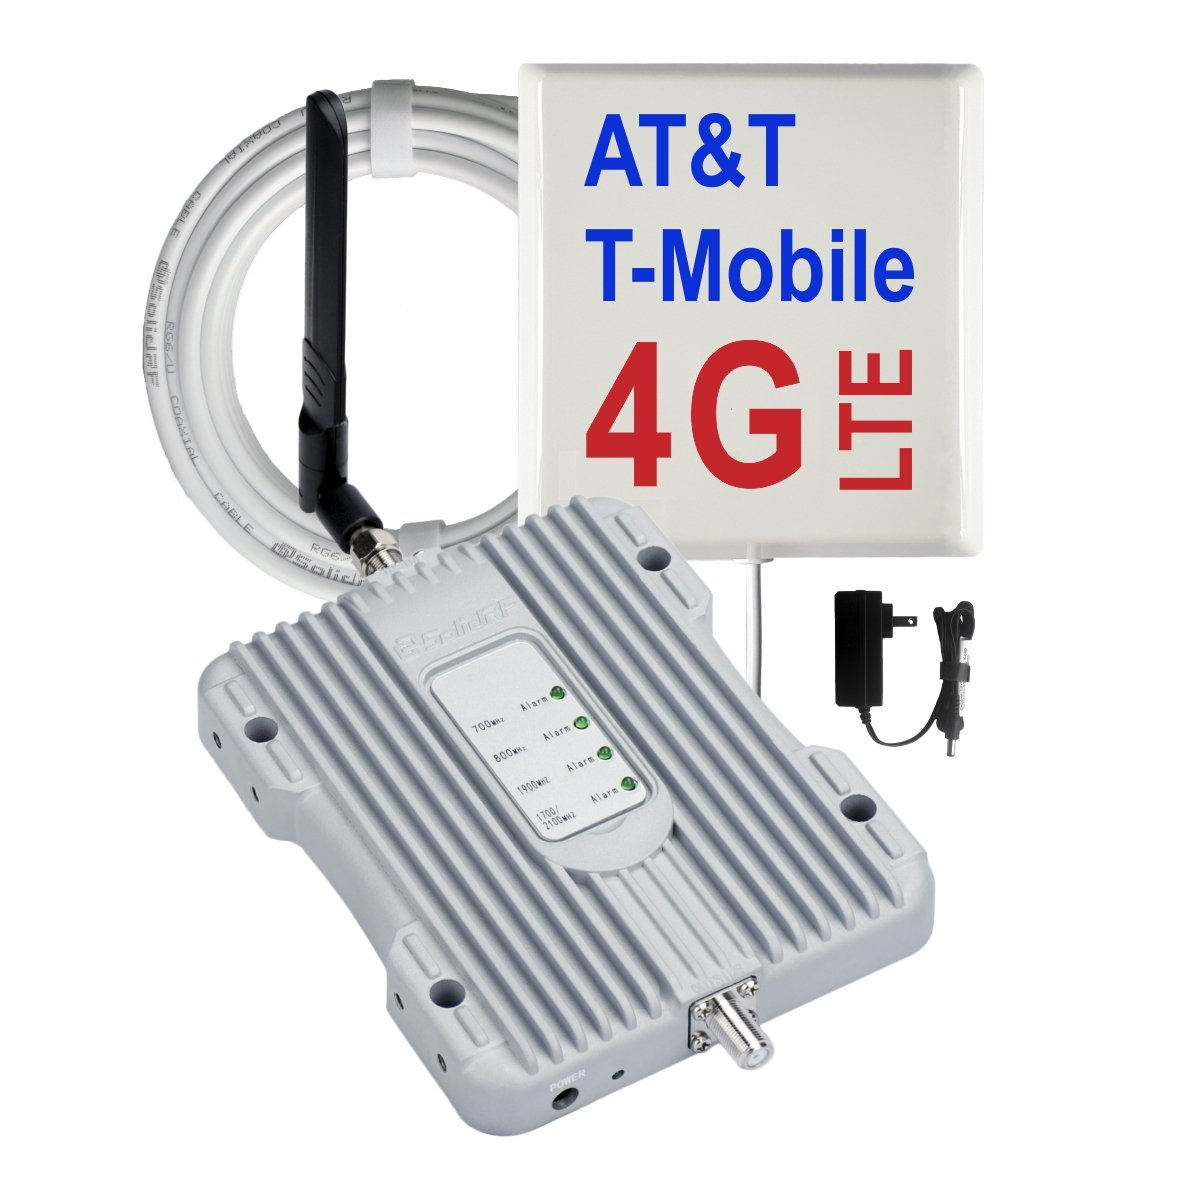 SolidRF SohoHome S1 AT&T T-Mobile 4G LTE Five Bands Cell Phone Boosters For Home Office For All Carriers